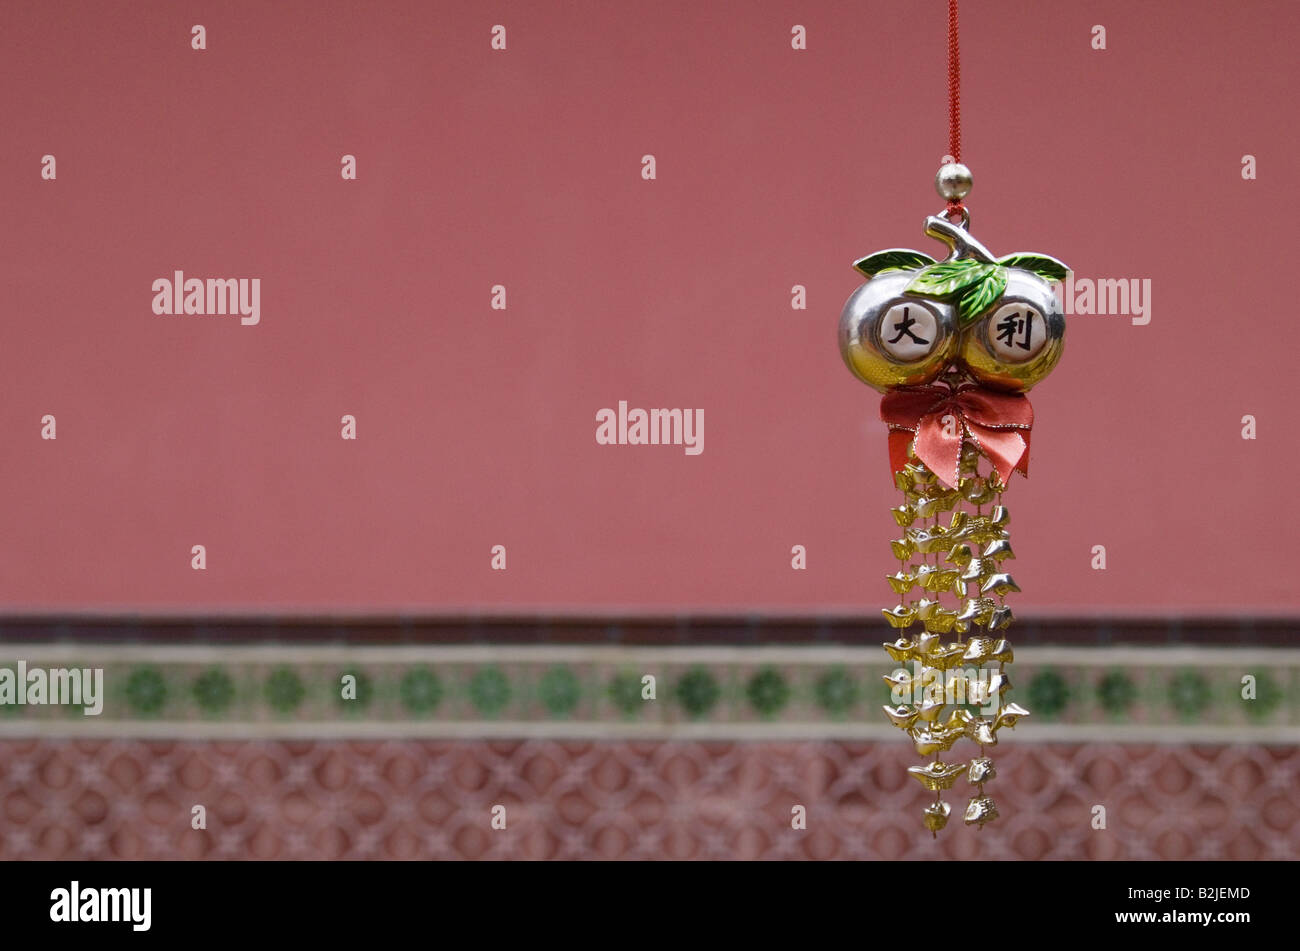 Ornate wind chime inside Thian Hock Keng Temple, the oldest Hokkien Chinese temple in Singapore Stock Photo